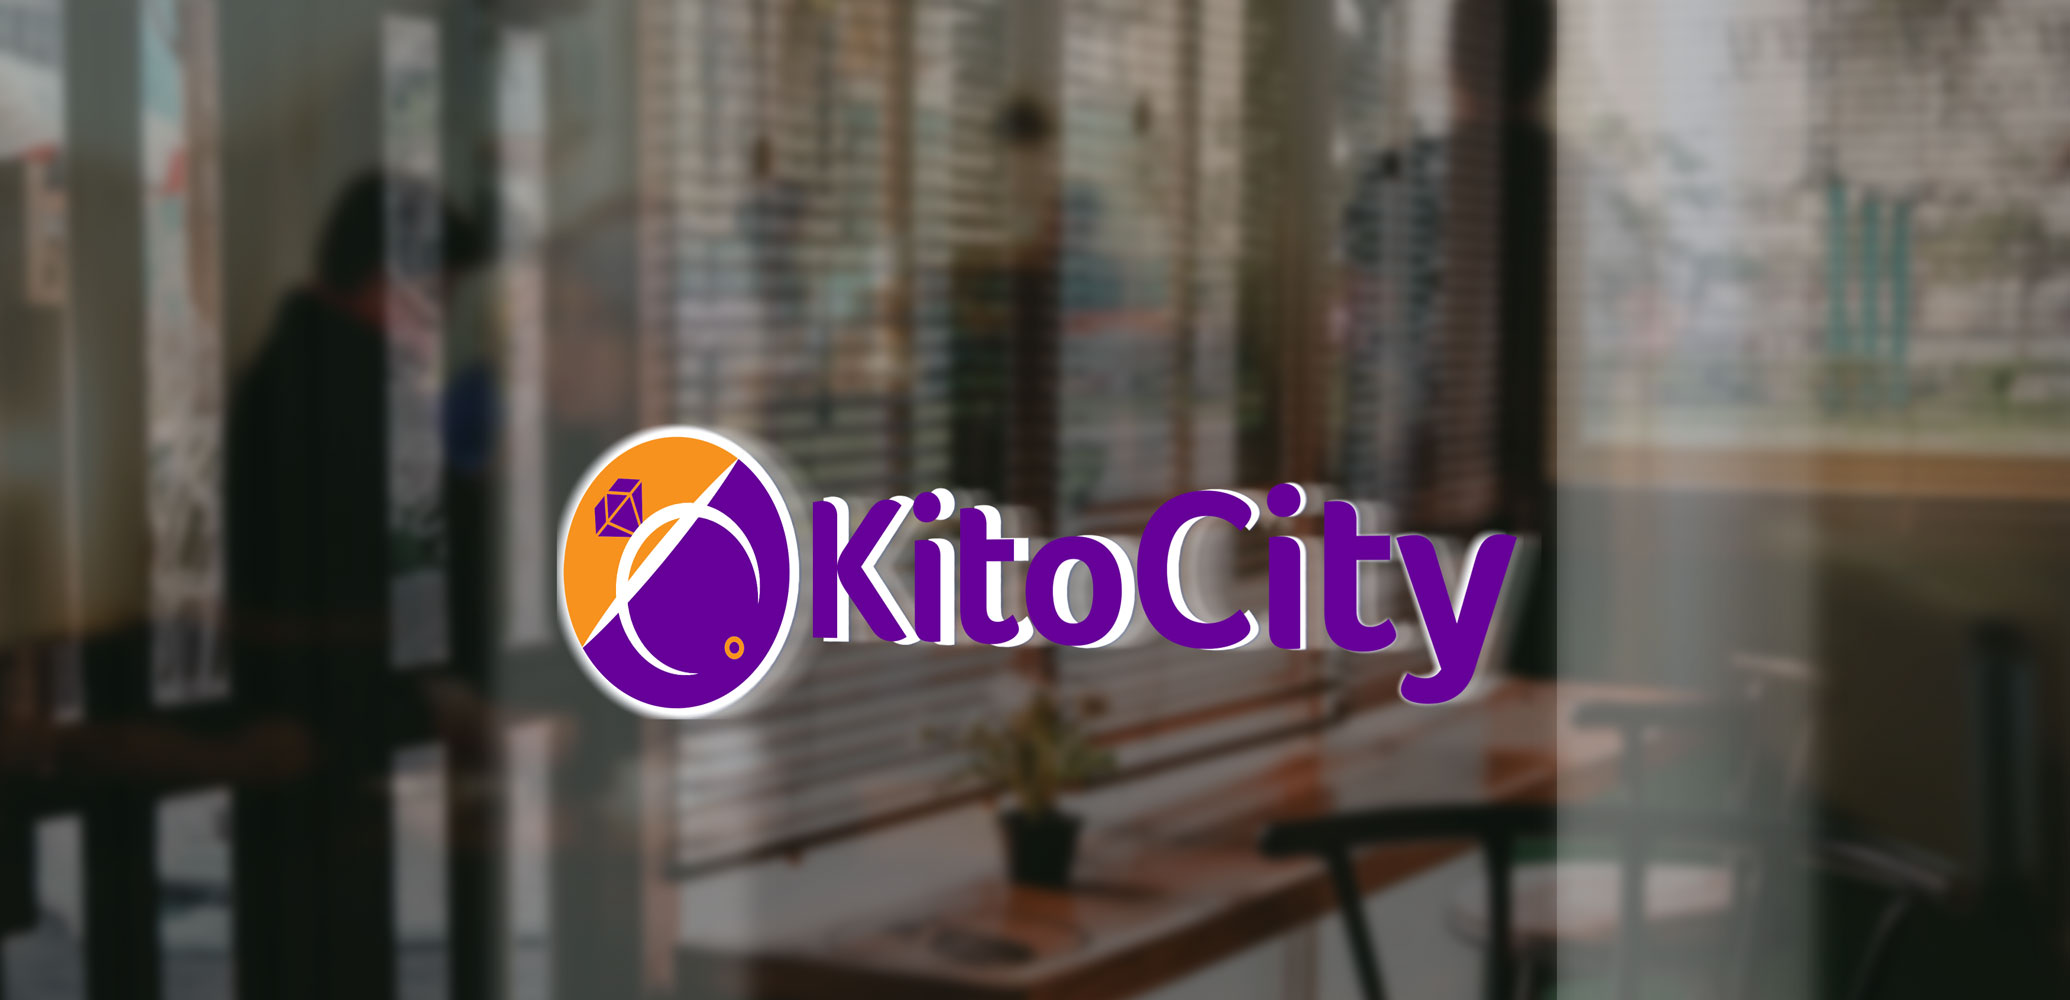 Kito City Contacts